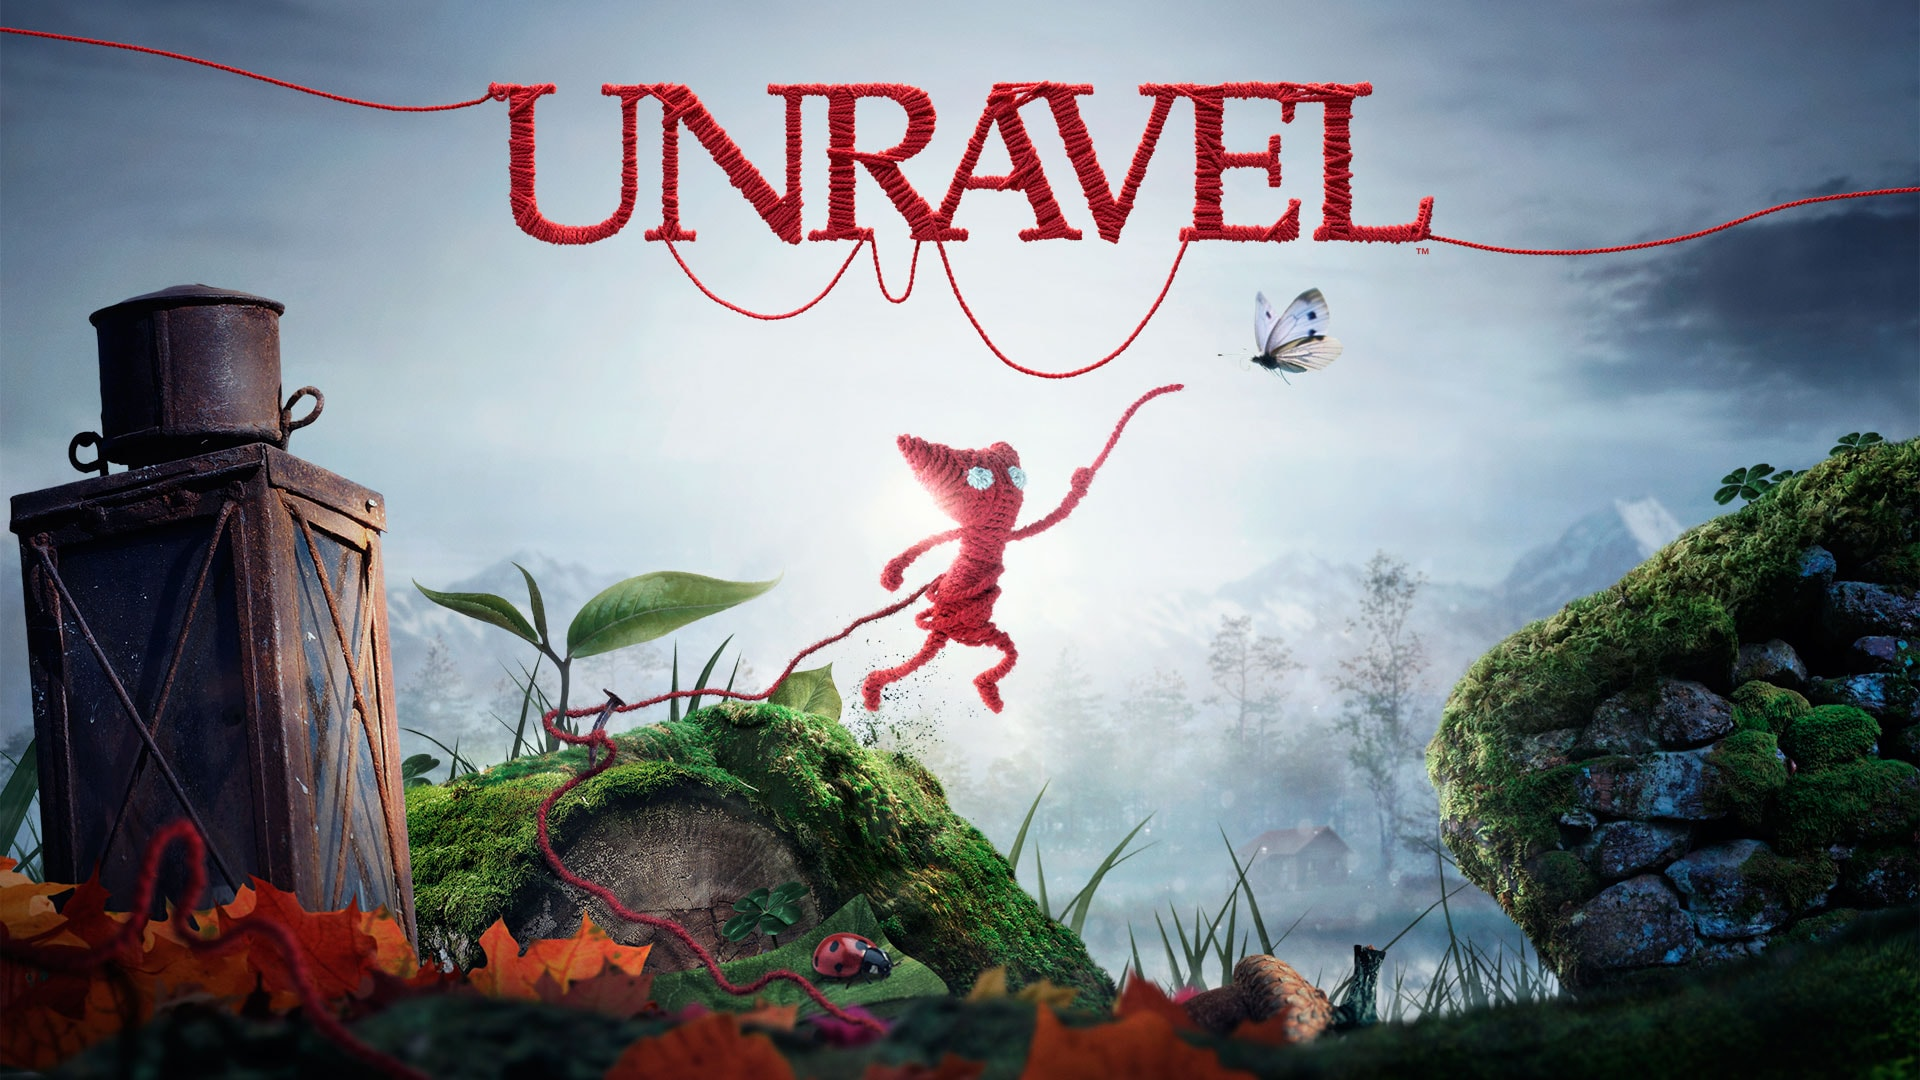 Unravel Wallpapers